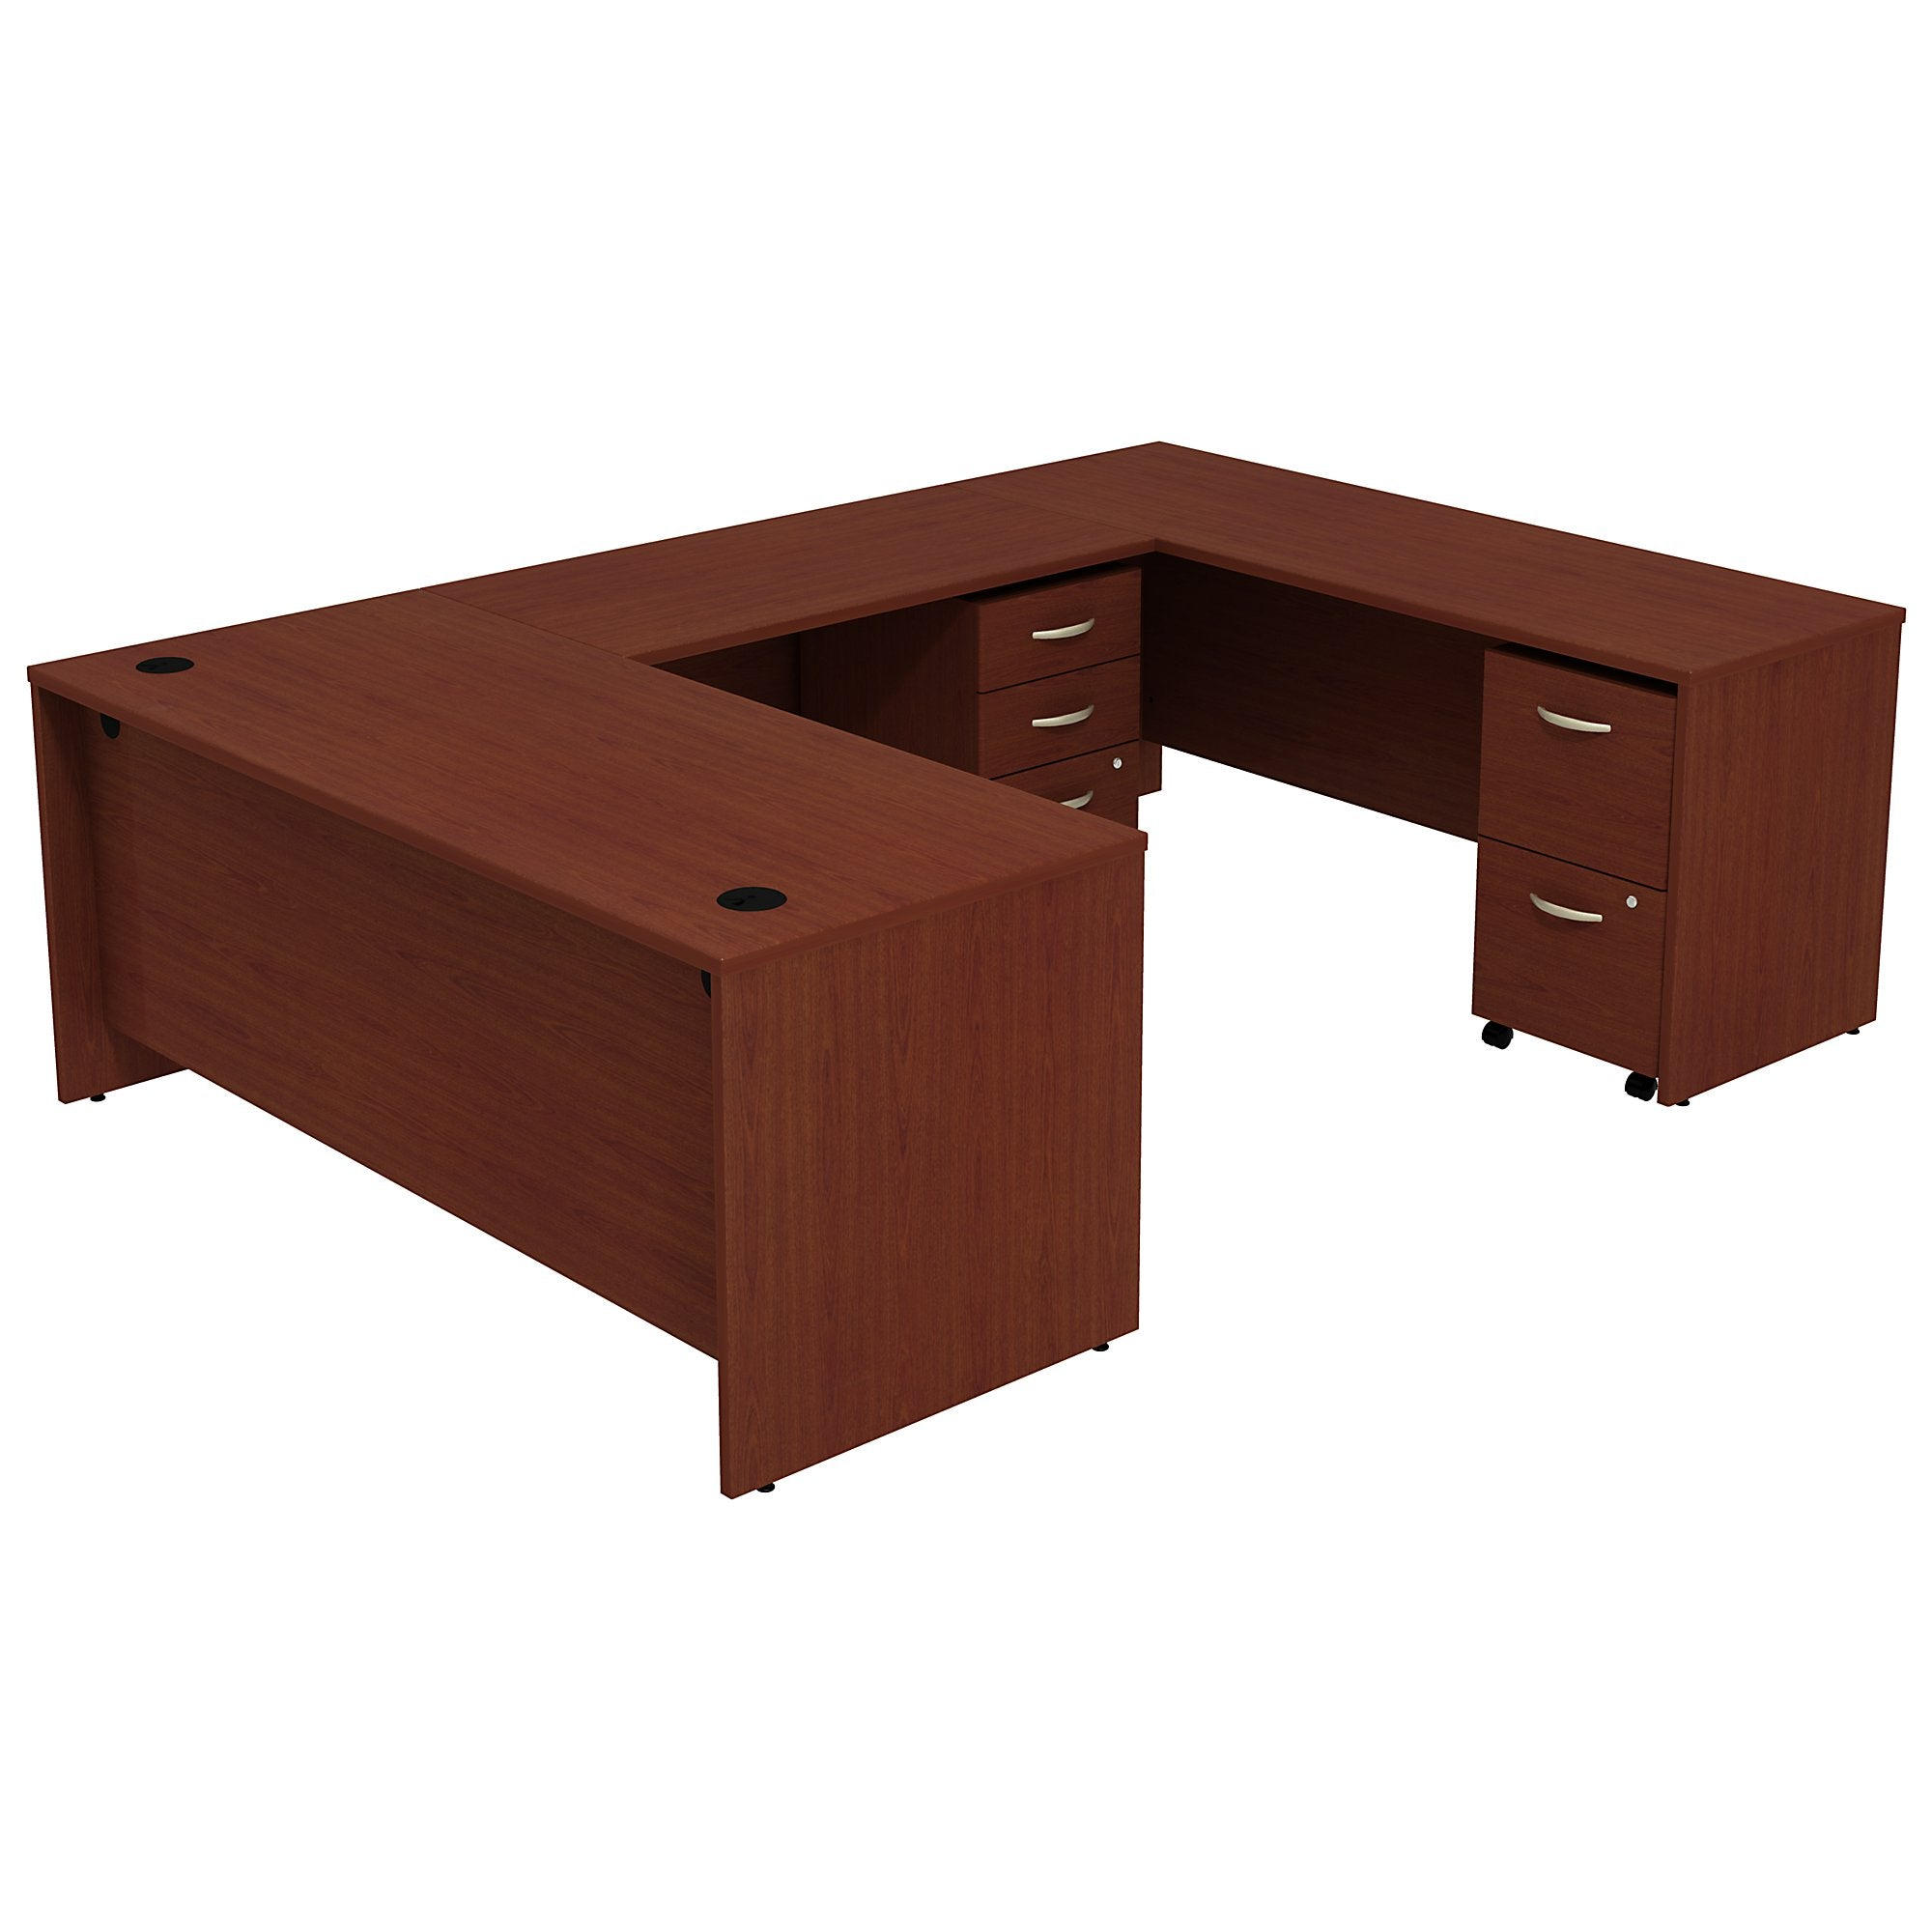 Bush Business Furniture Series C U Shaped Desk with 2 Mobile Pedestals | Mahogany